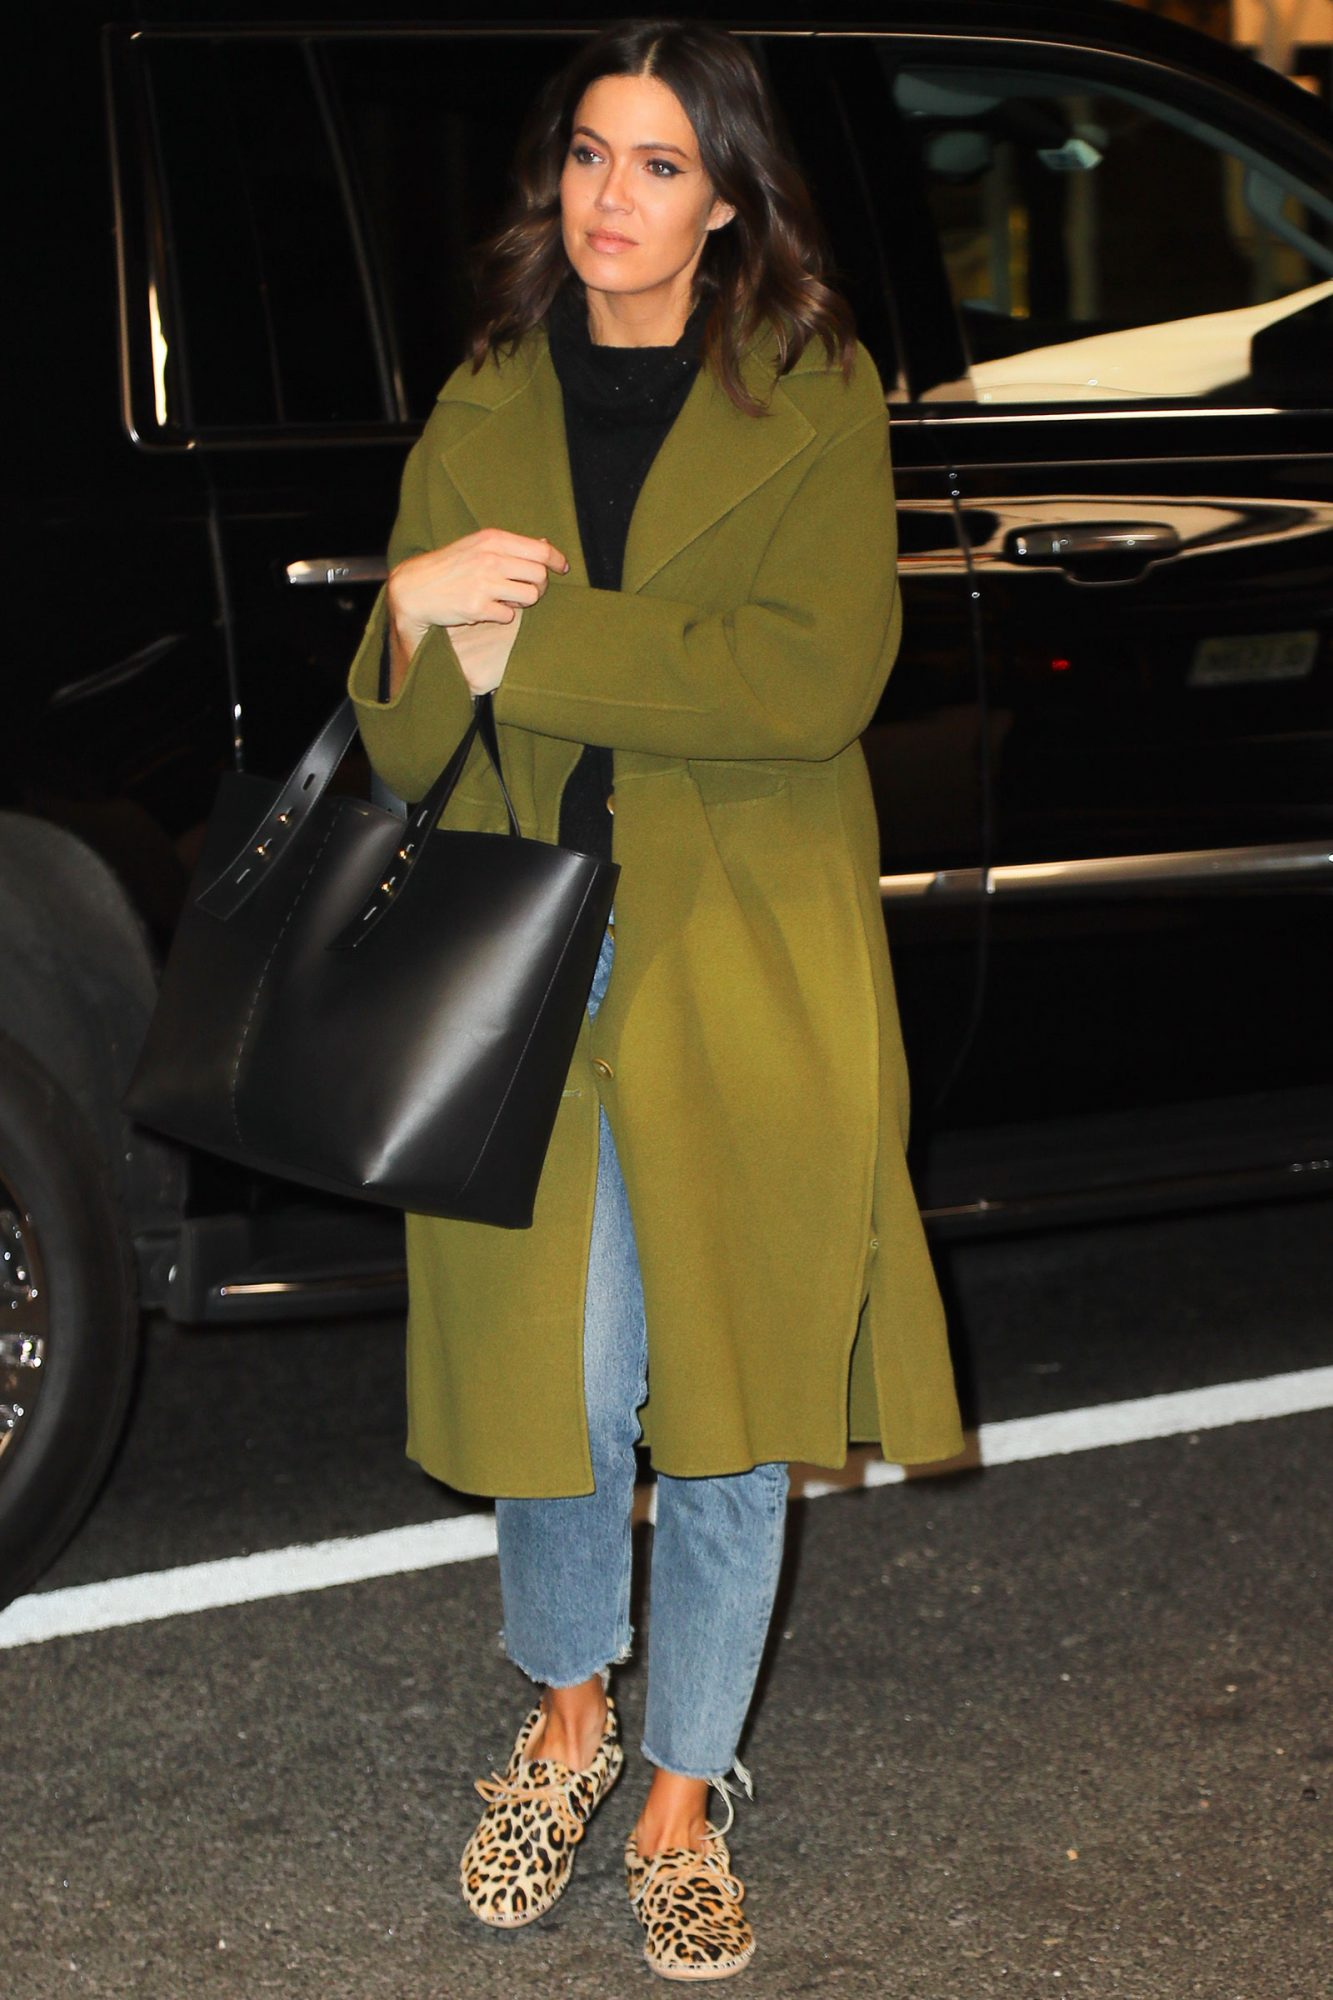 EXCLUSIVE: Mandy Moore Signs Autographs For Her Fans While Arriving Back At Her Hotel In NYC